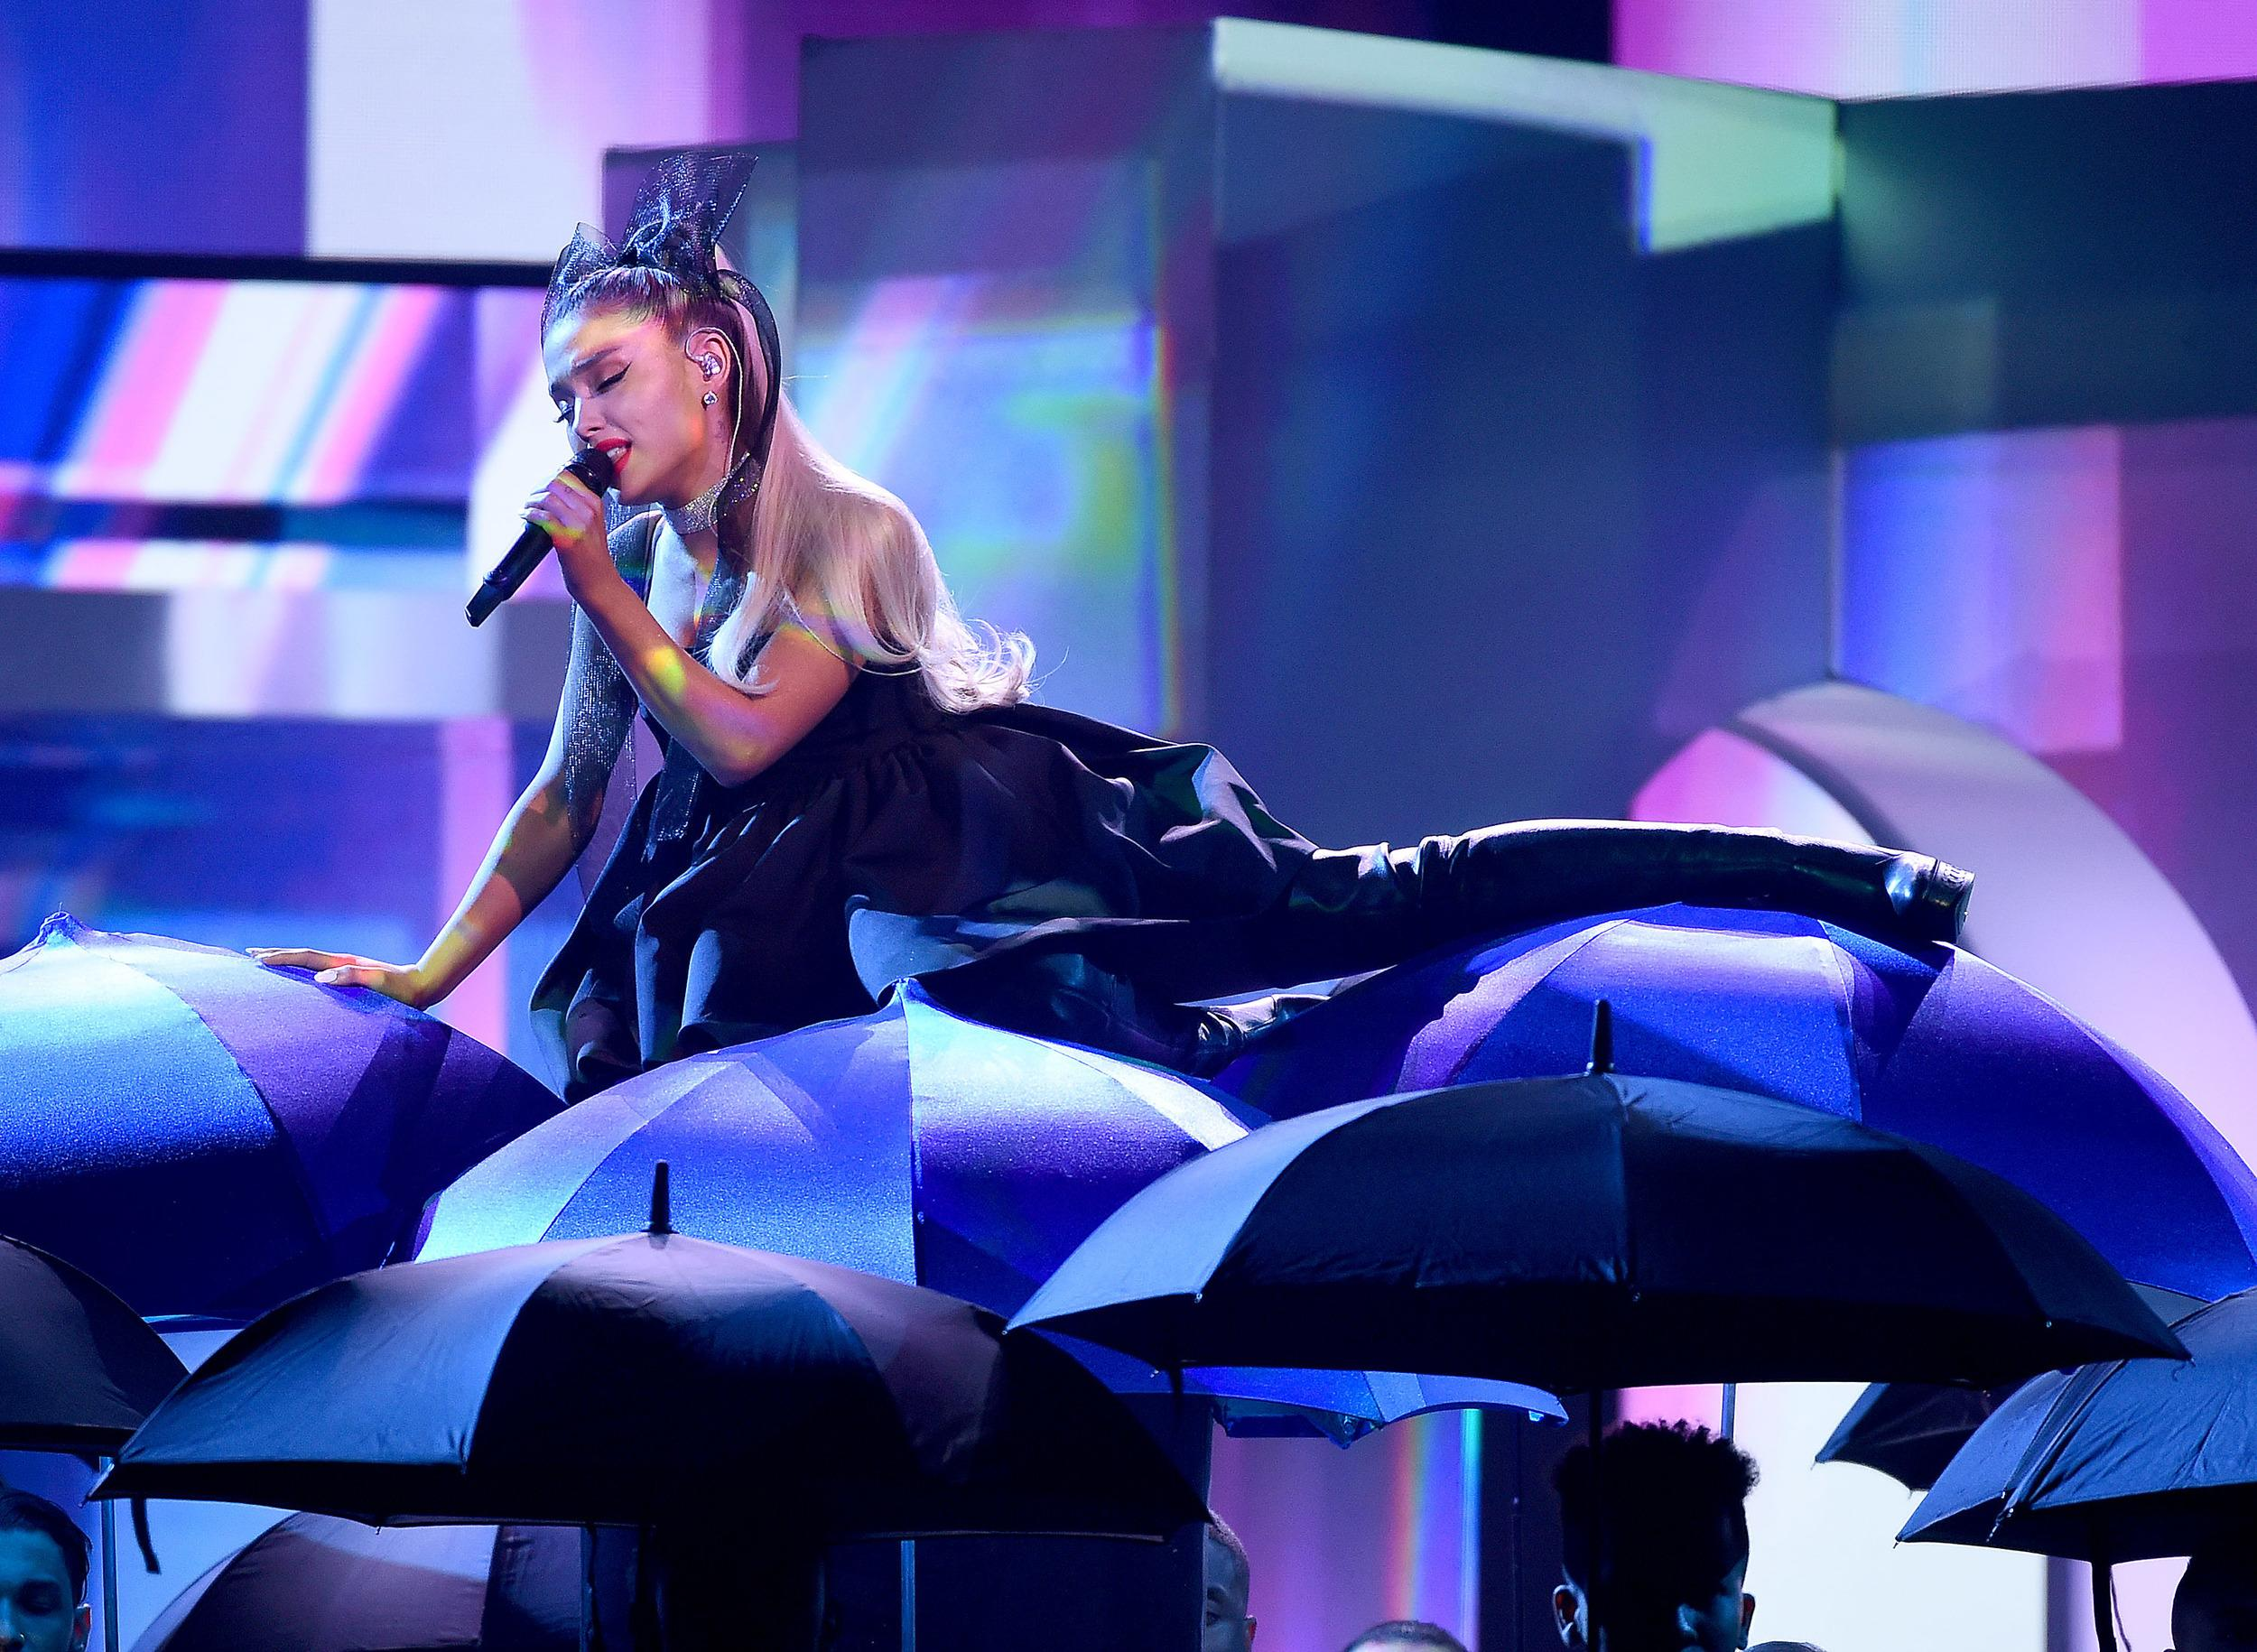 LAS VEGAS, NV - MAY 20: Ariana Grande performs at the 2018 Billboard Music Awards at MGM Grand Garden Arena on May 20, 2018 in Las Vegas, Nevada. (Photo by Frank Micelotta/PictureGroup/Sipa USA)